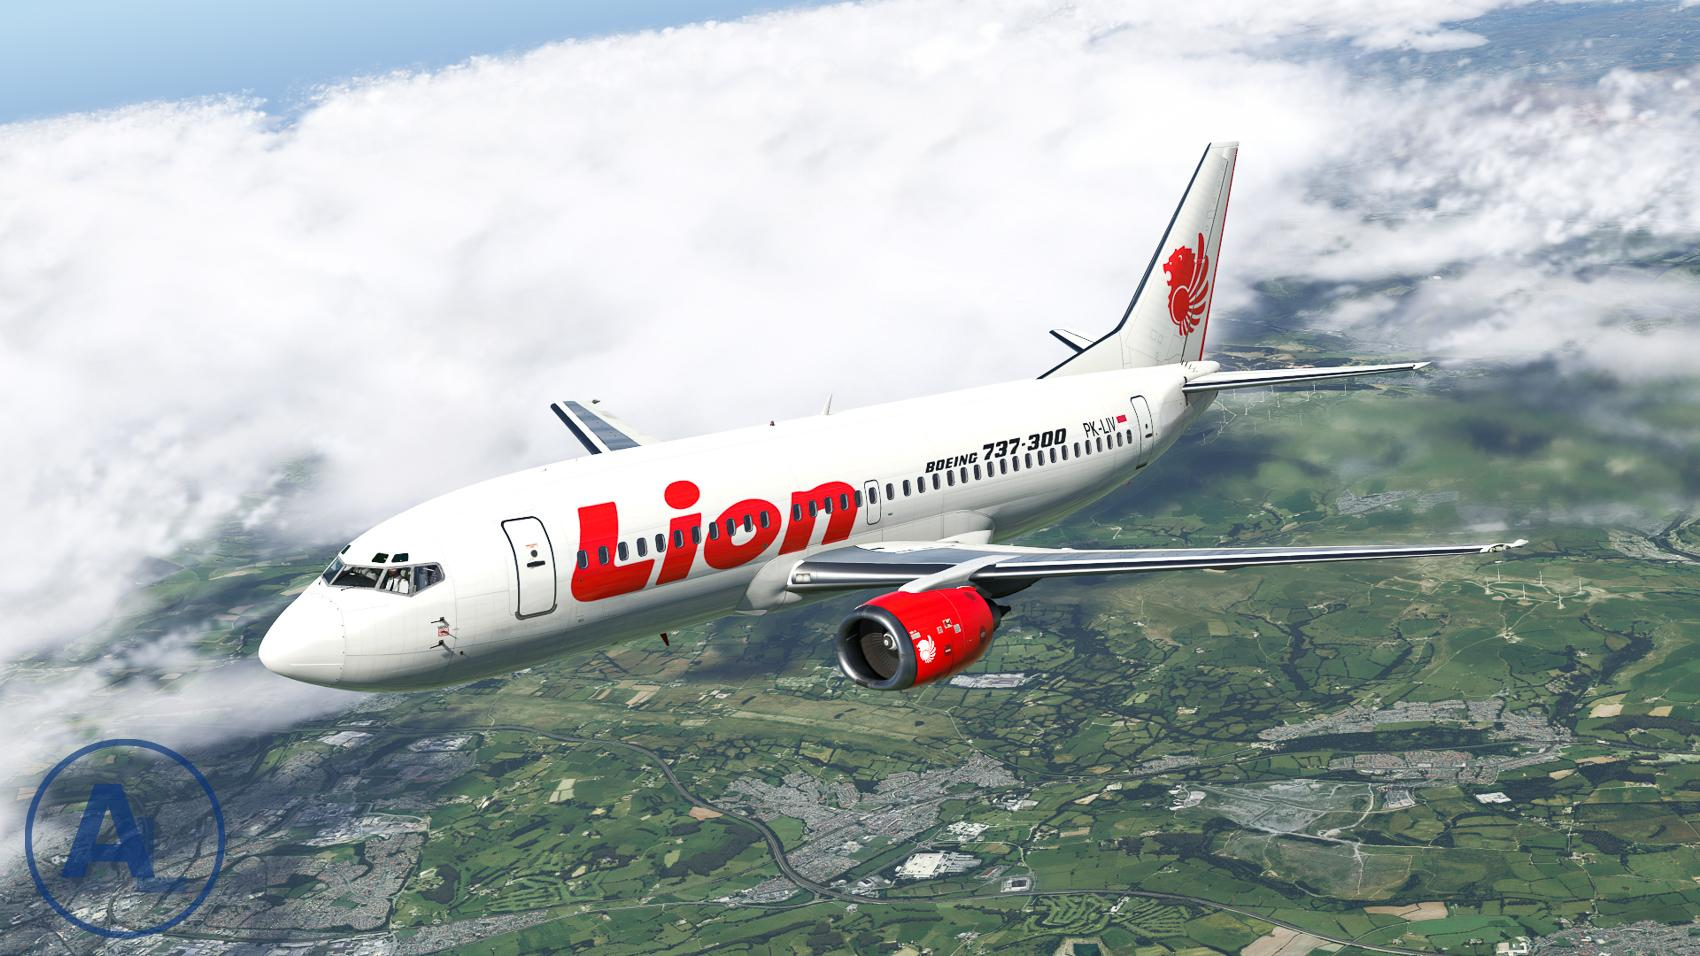 Lion Air IXEG 737 - Aircraft Skins - Liveries - X-Plane Org